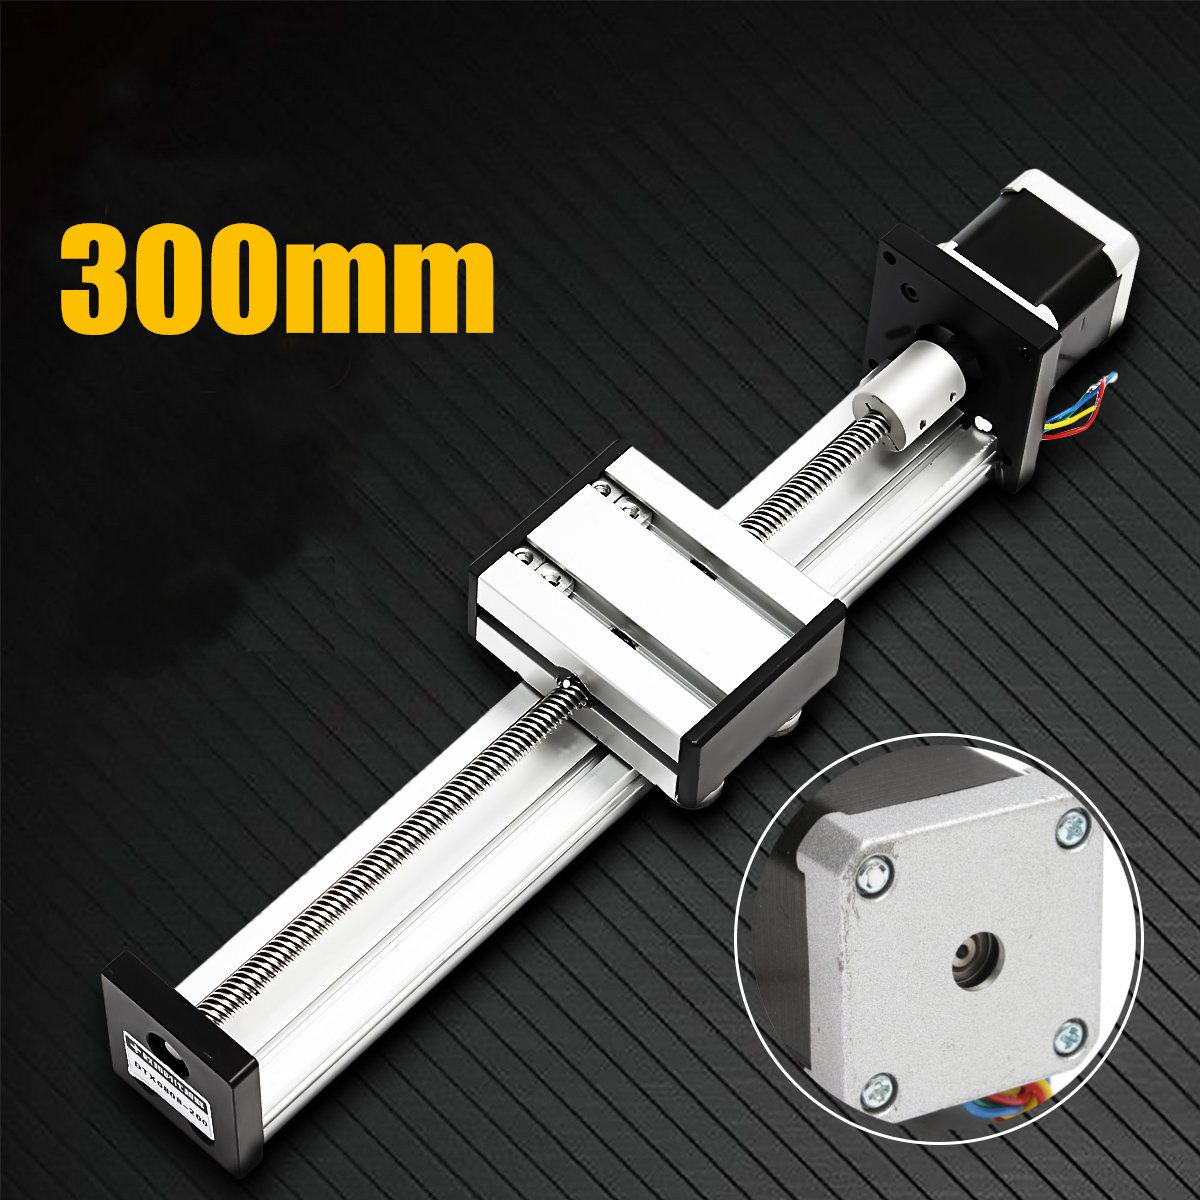 1Pcs 300mm Slide Stroke CNC Linear Motion Lead Ball Screw Slide Stage Stroke 42 Motor Actuator Stepper For Engraving Machine new 500mm slide stroke cnc linear motion lead ball screw slide stage stroke 42 motor actuator stepper for engraving machine